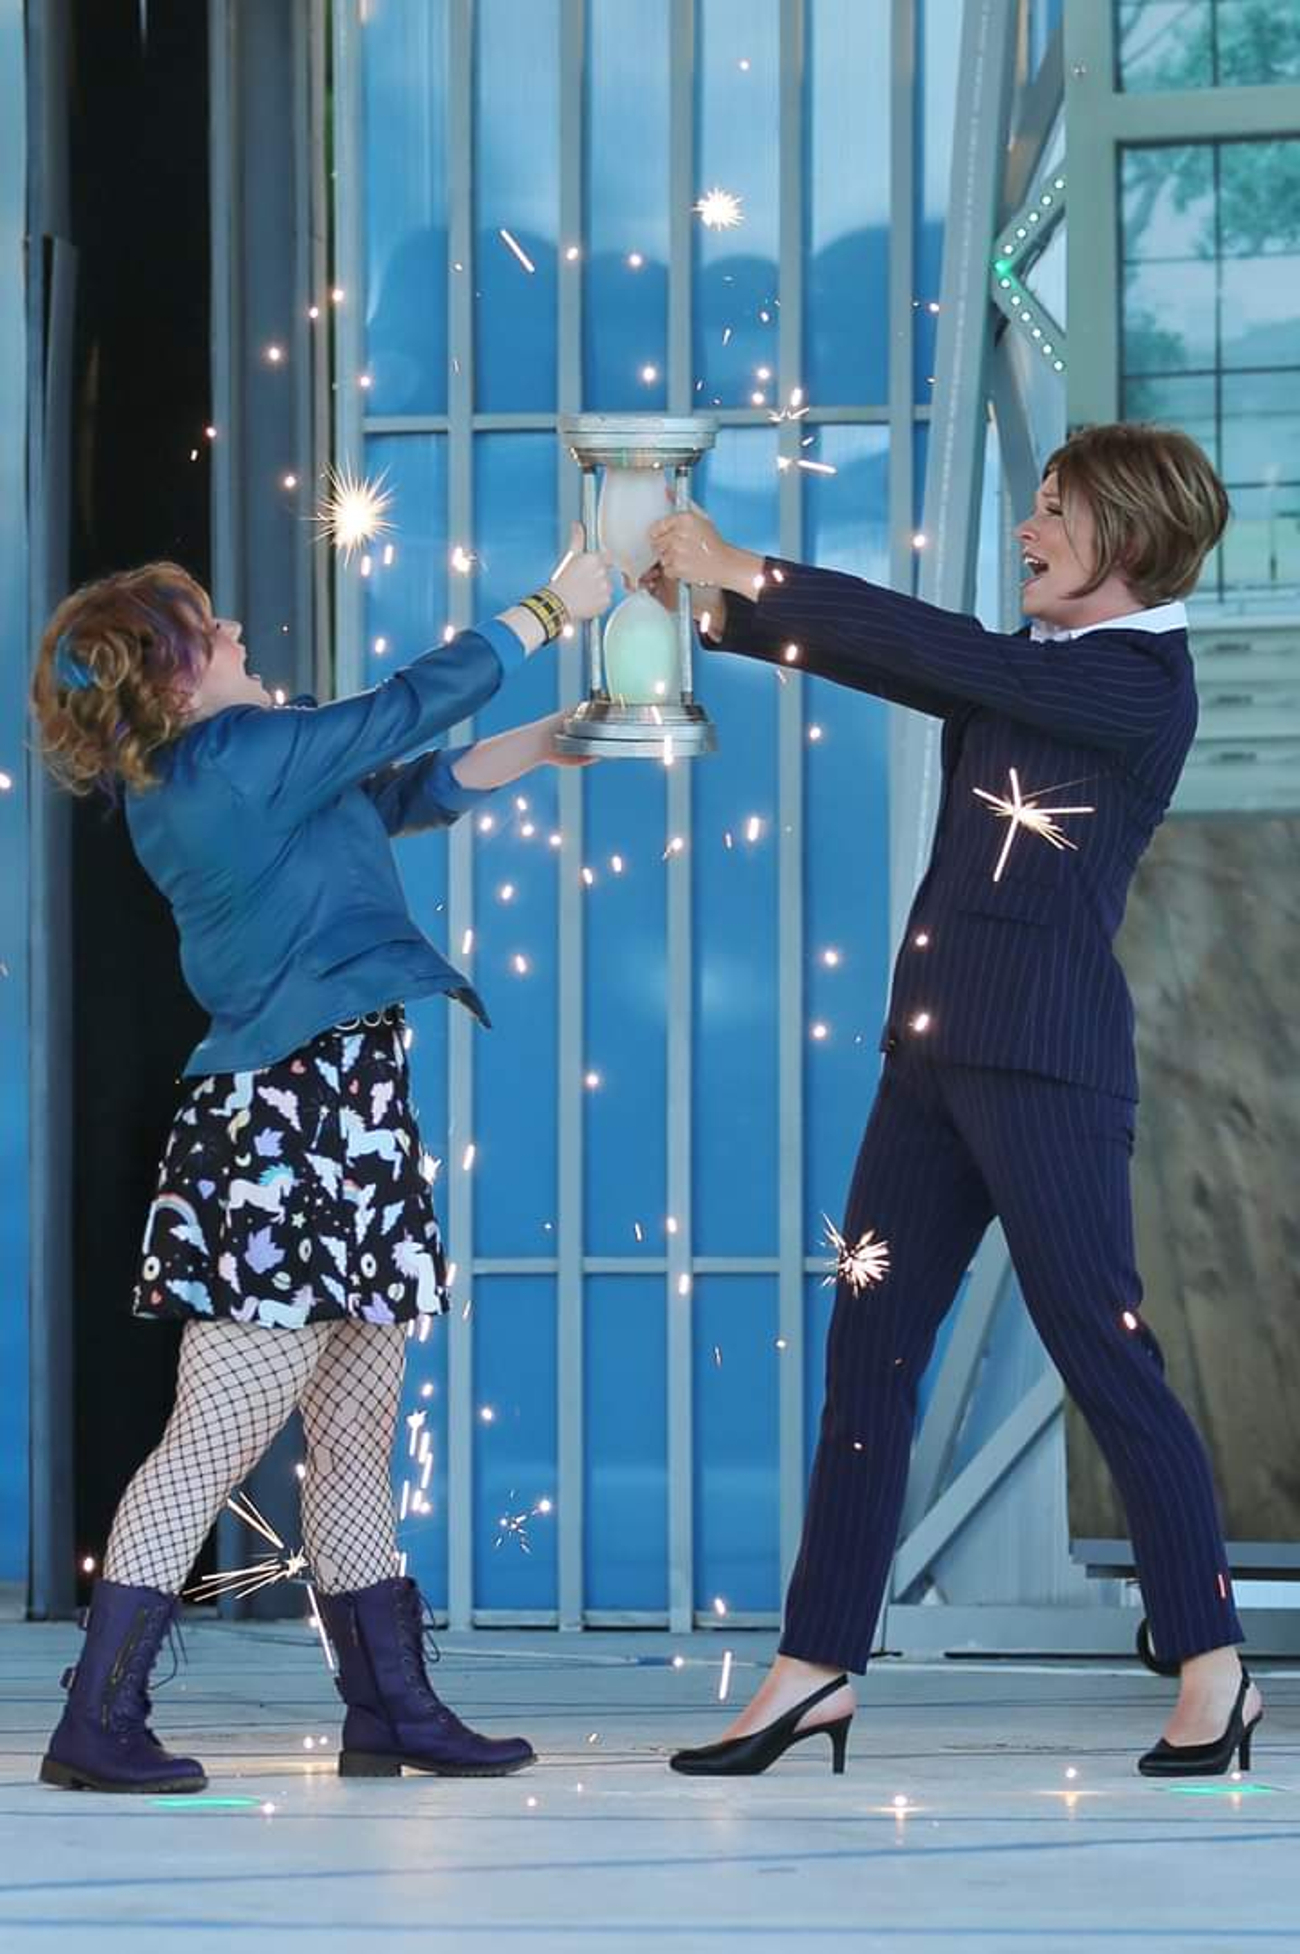 BWW Review: FREAKY FRIDAY at Trollwood Performing Arts School